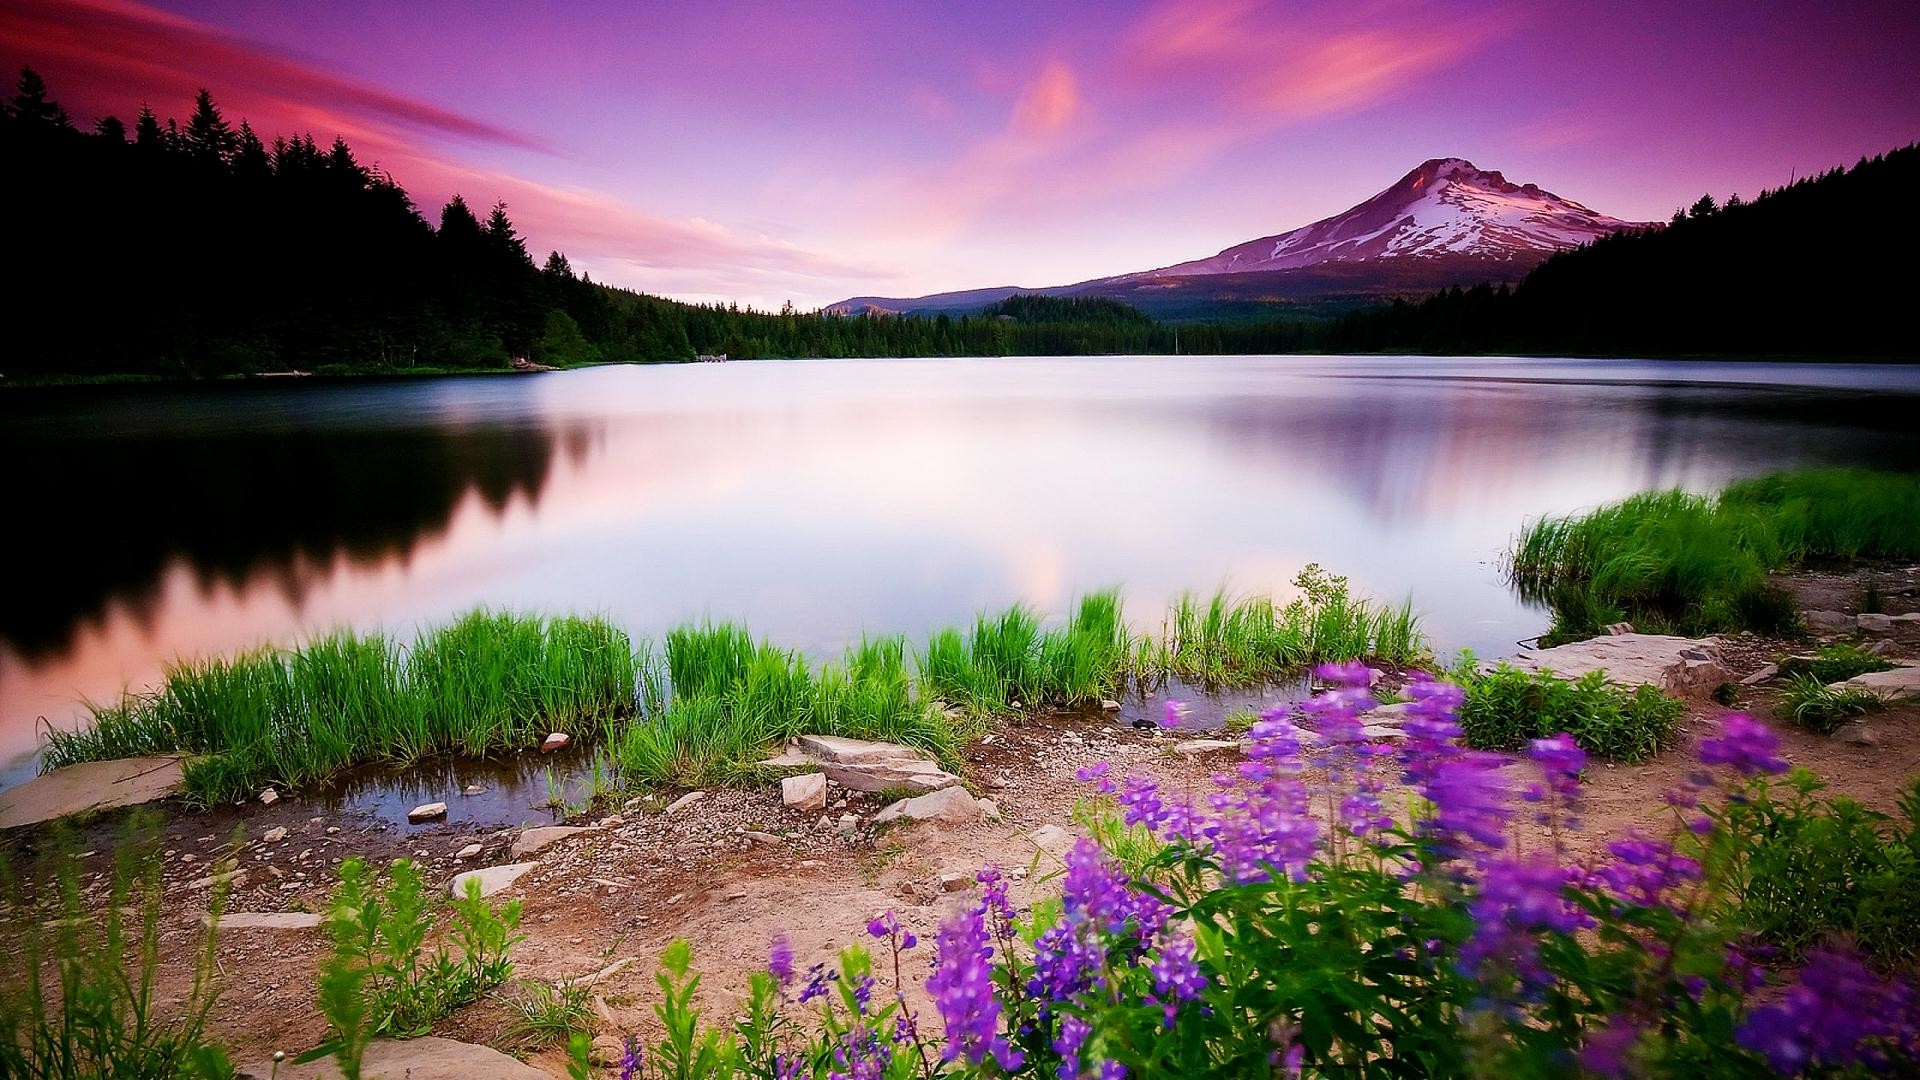 Nature Hd Wallpapers For Windows 10 - 1920x1080 - Download ...